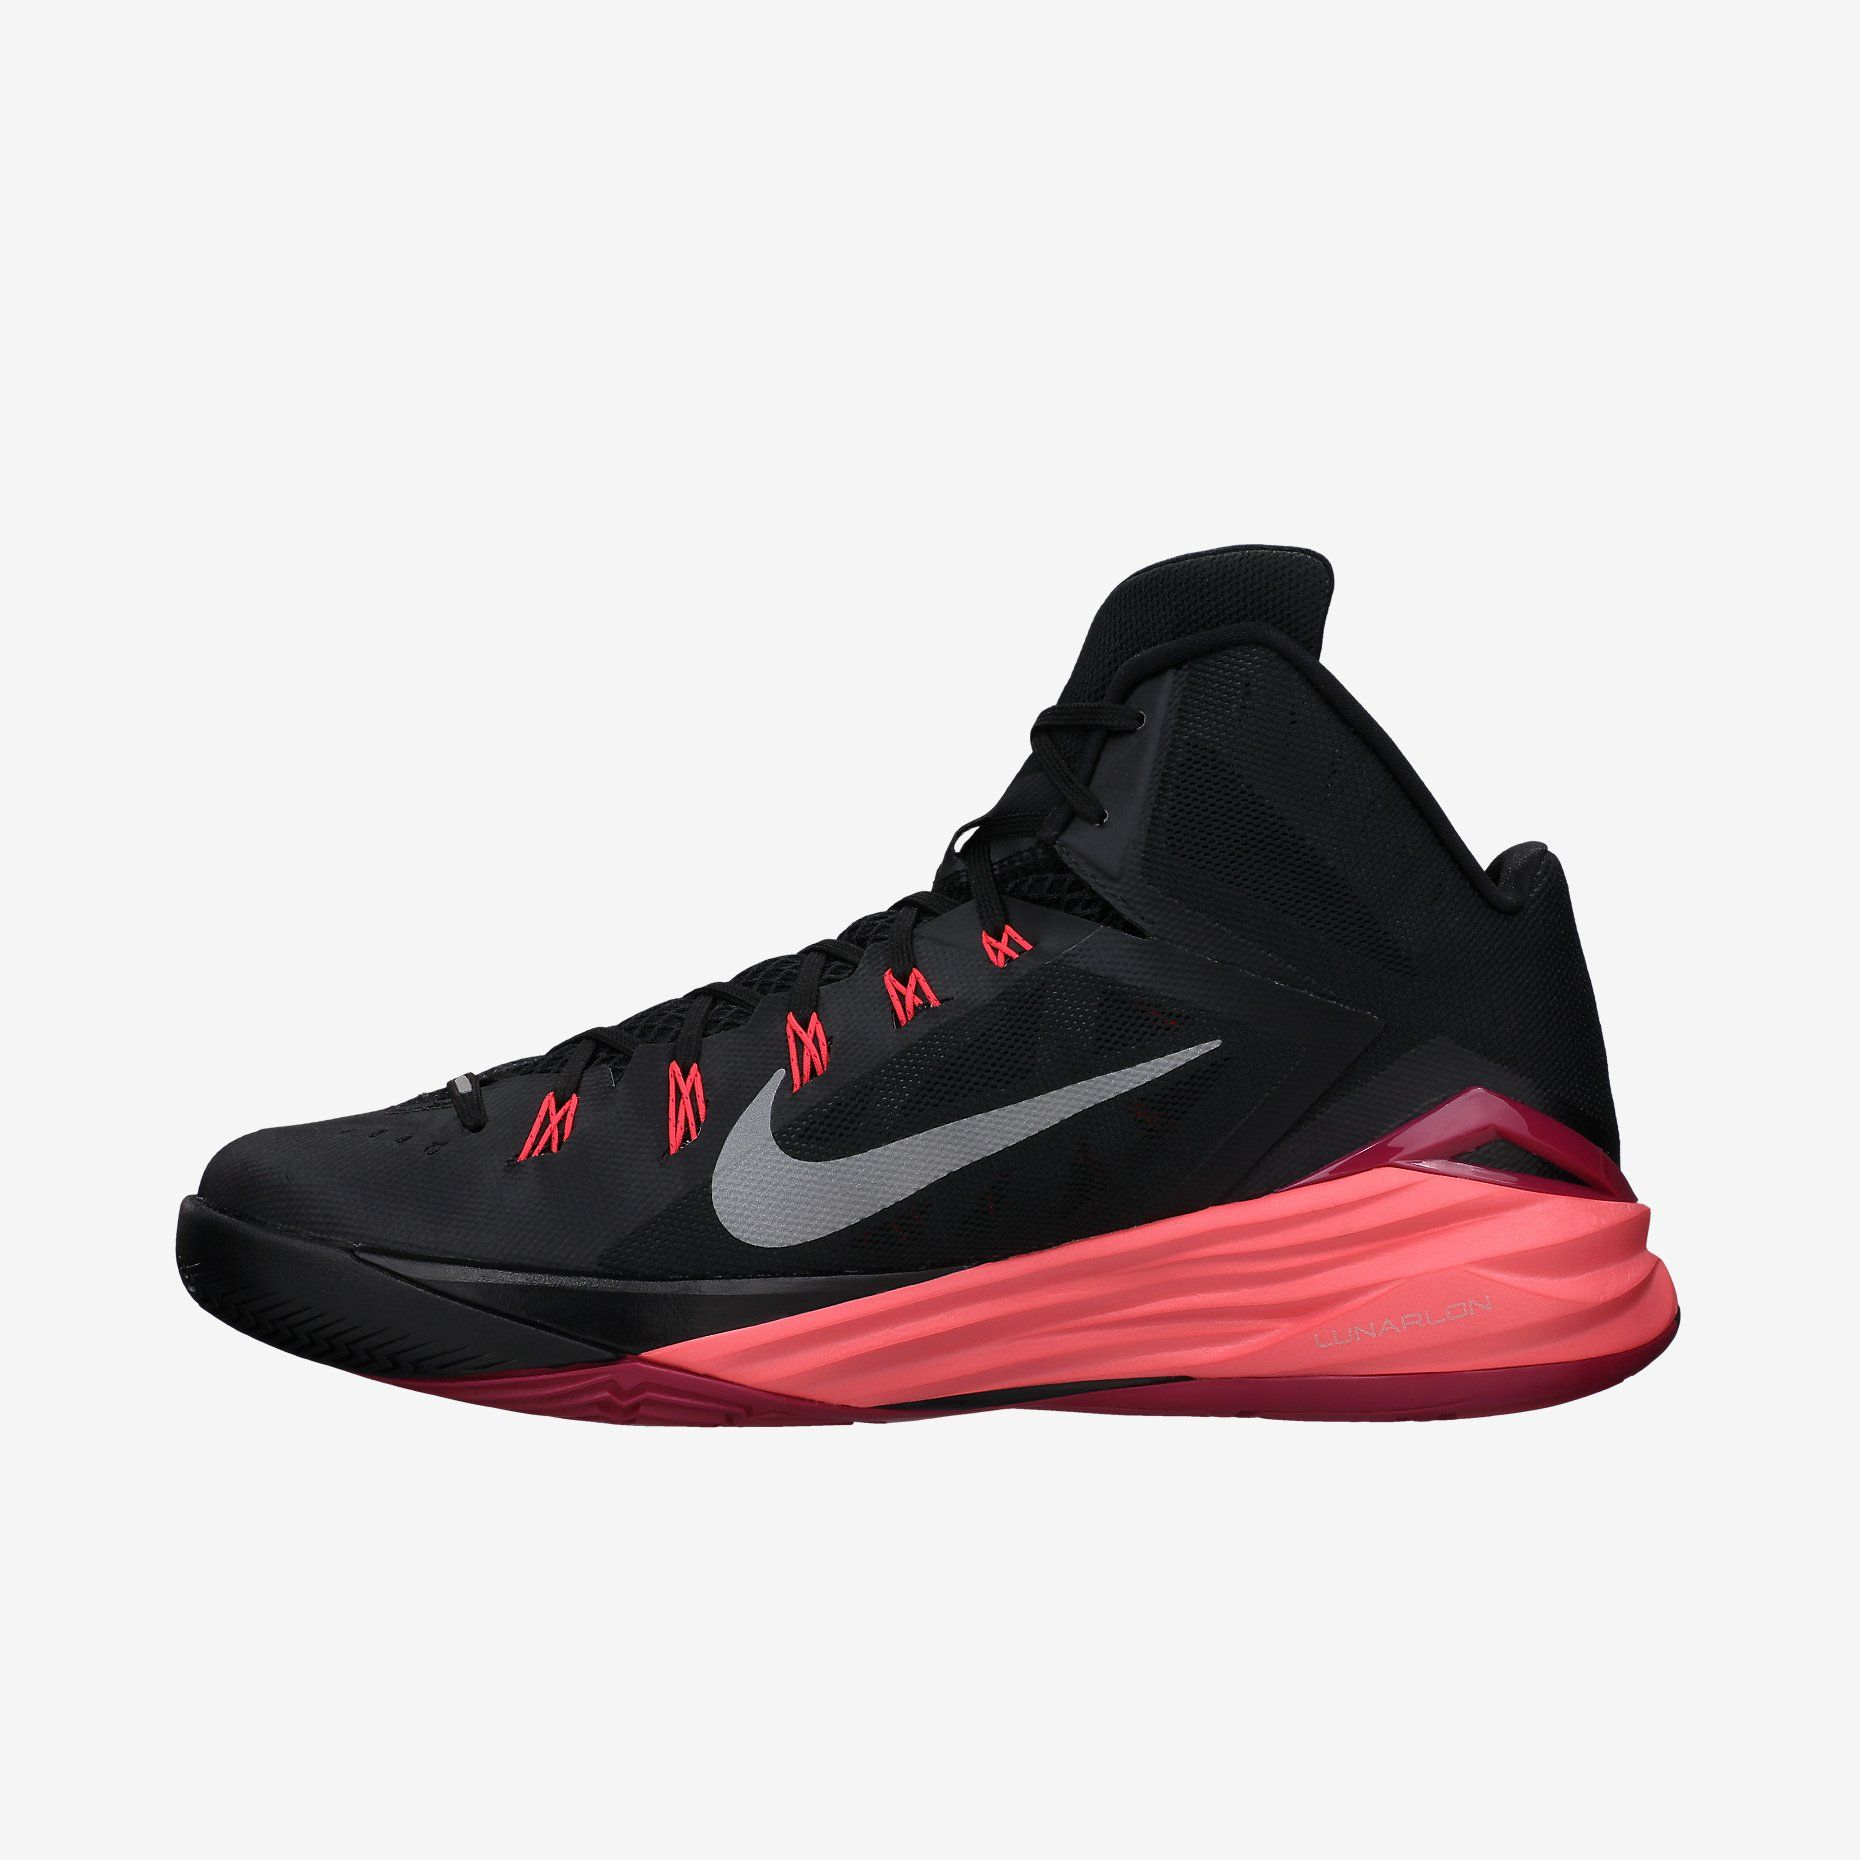 finest selection f94d5 26748 Nike Hyperdunk 2014 Men s Basketball Shoe. Nike Store